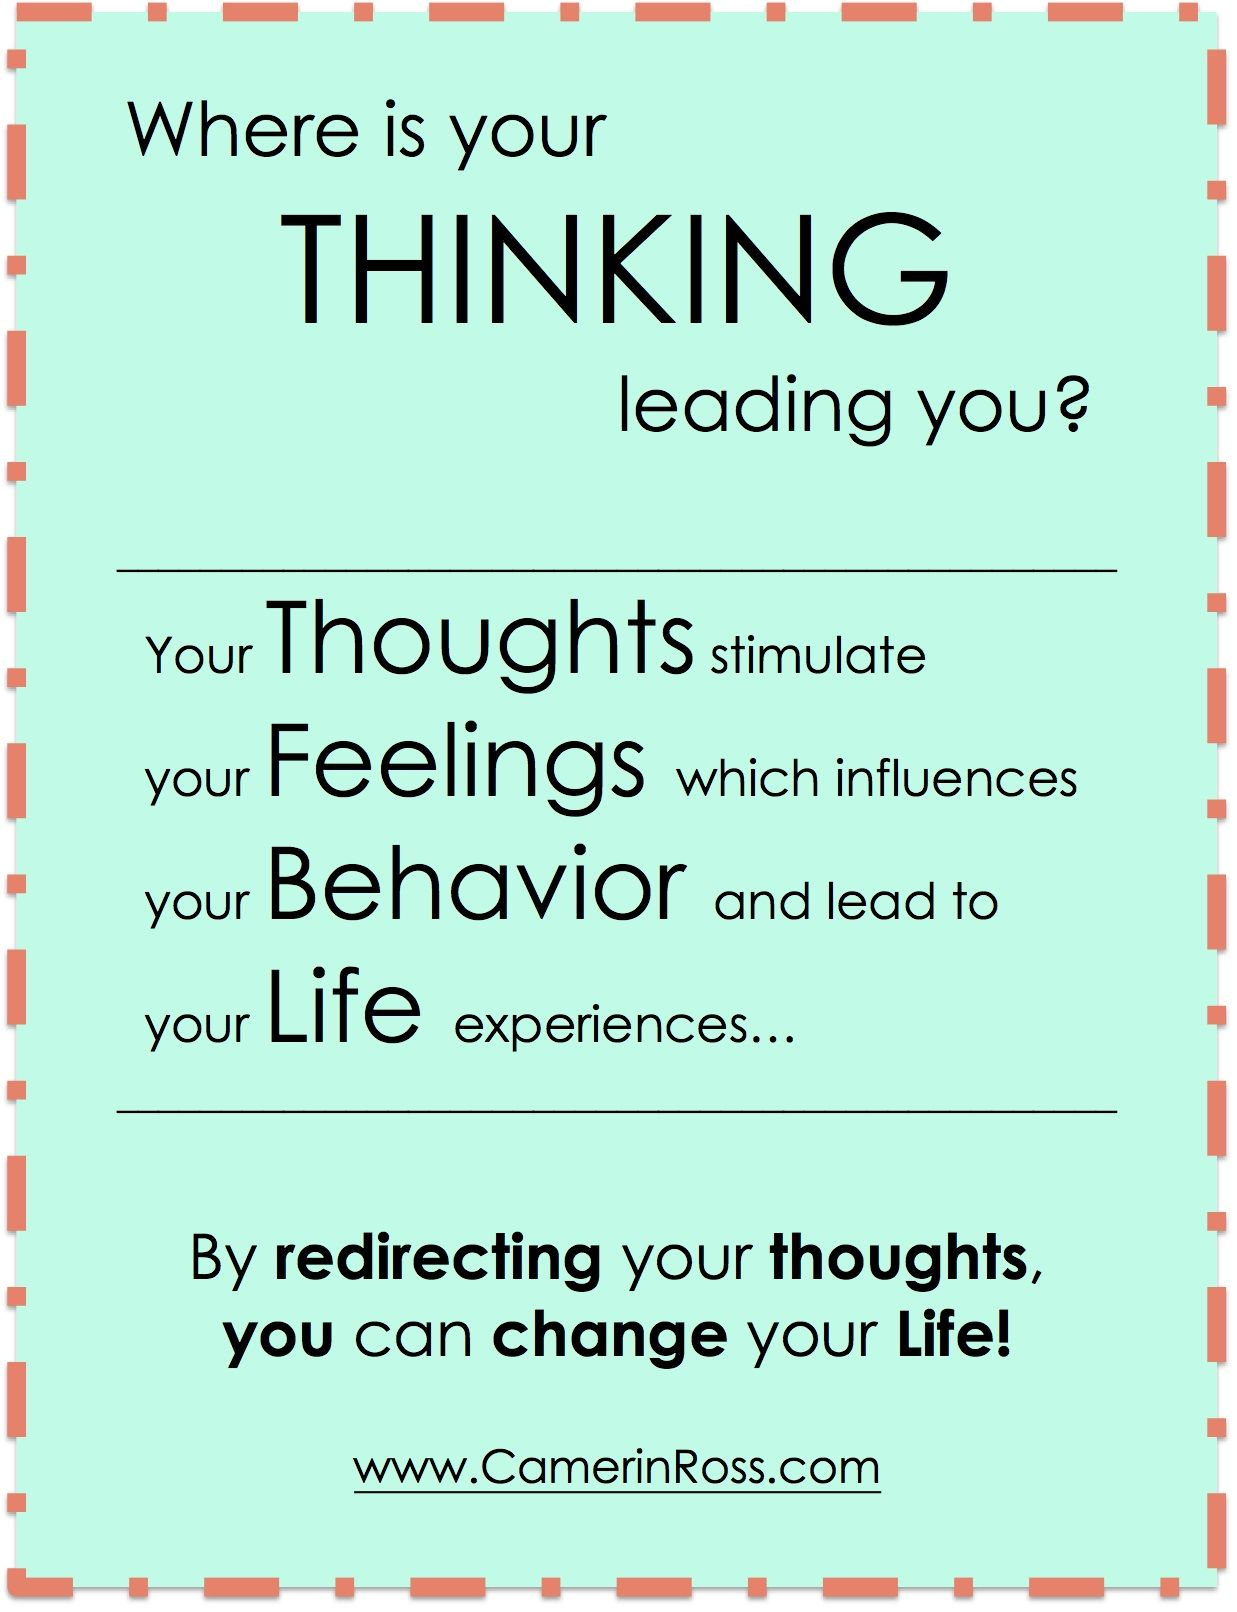 Where Is Your Thinking Leading You By Redirecting Your